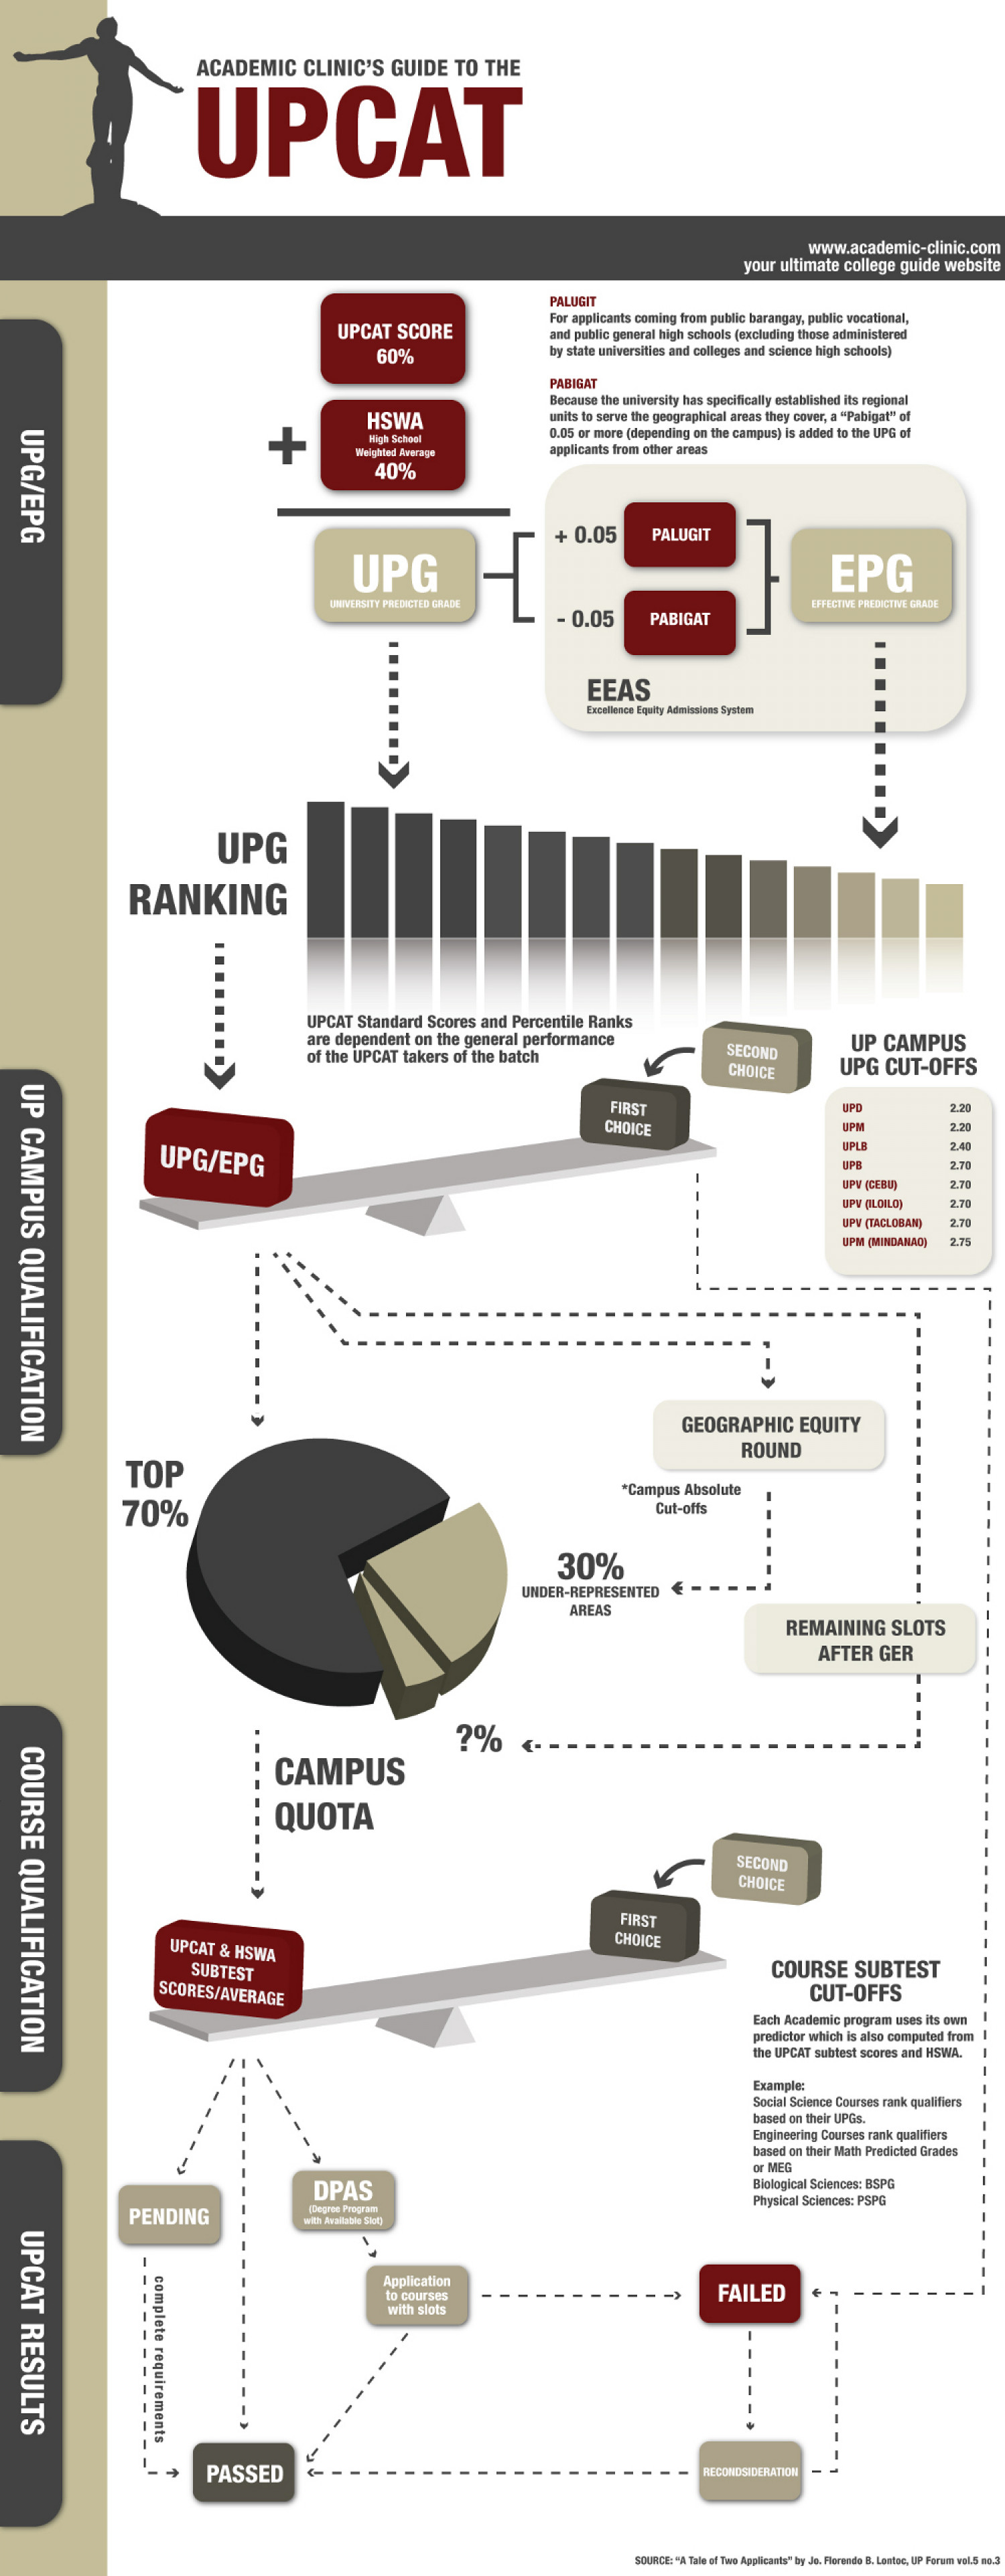 Academic Clinics Guide to the UPCAT  Infographic